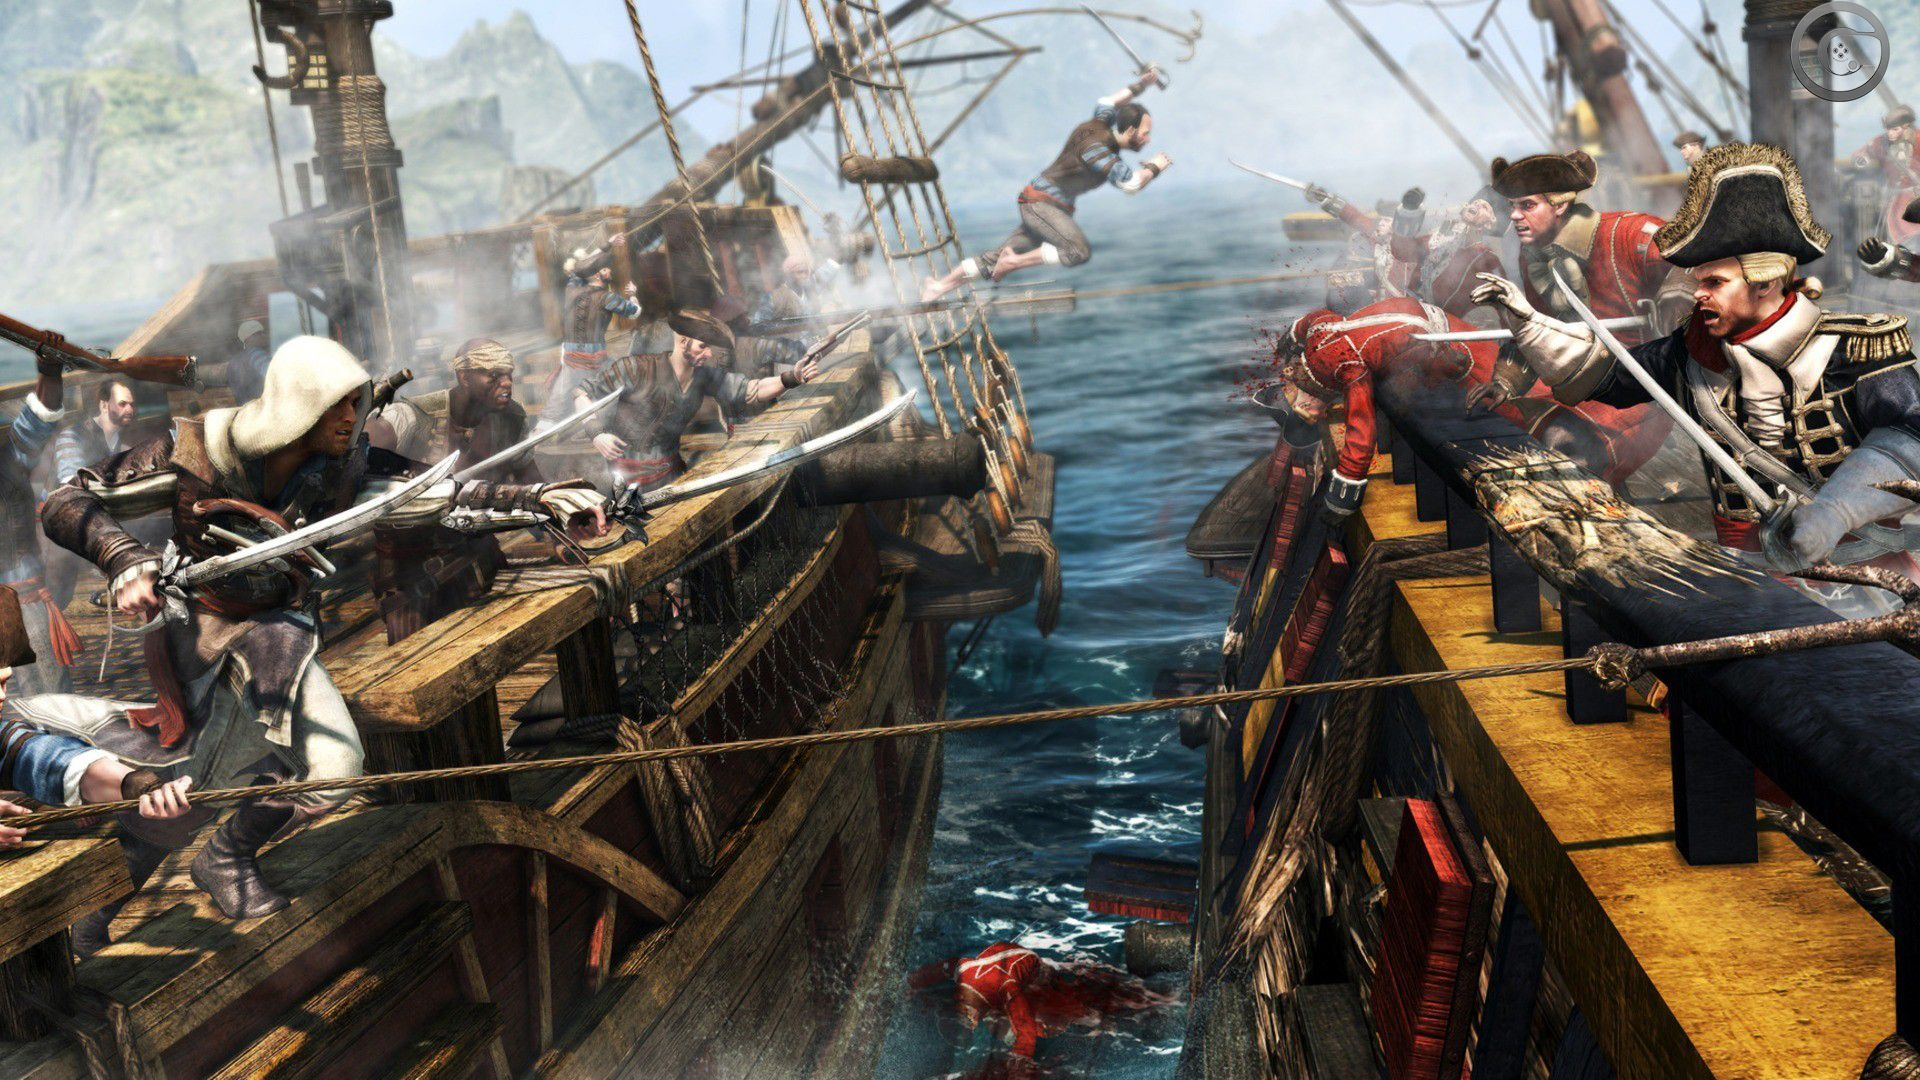 Assassin S Creed Iv Black Flag Hd Wallpapers Assassins Creed Black Flag Assassin S Creed Black Assassins Creed 4